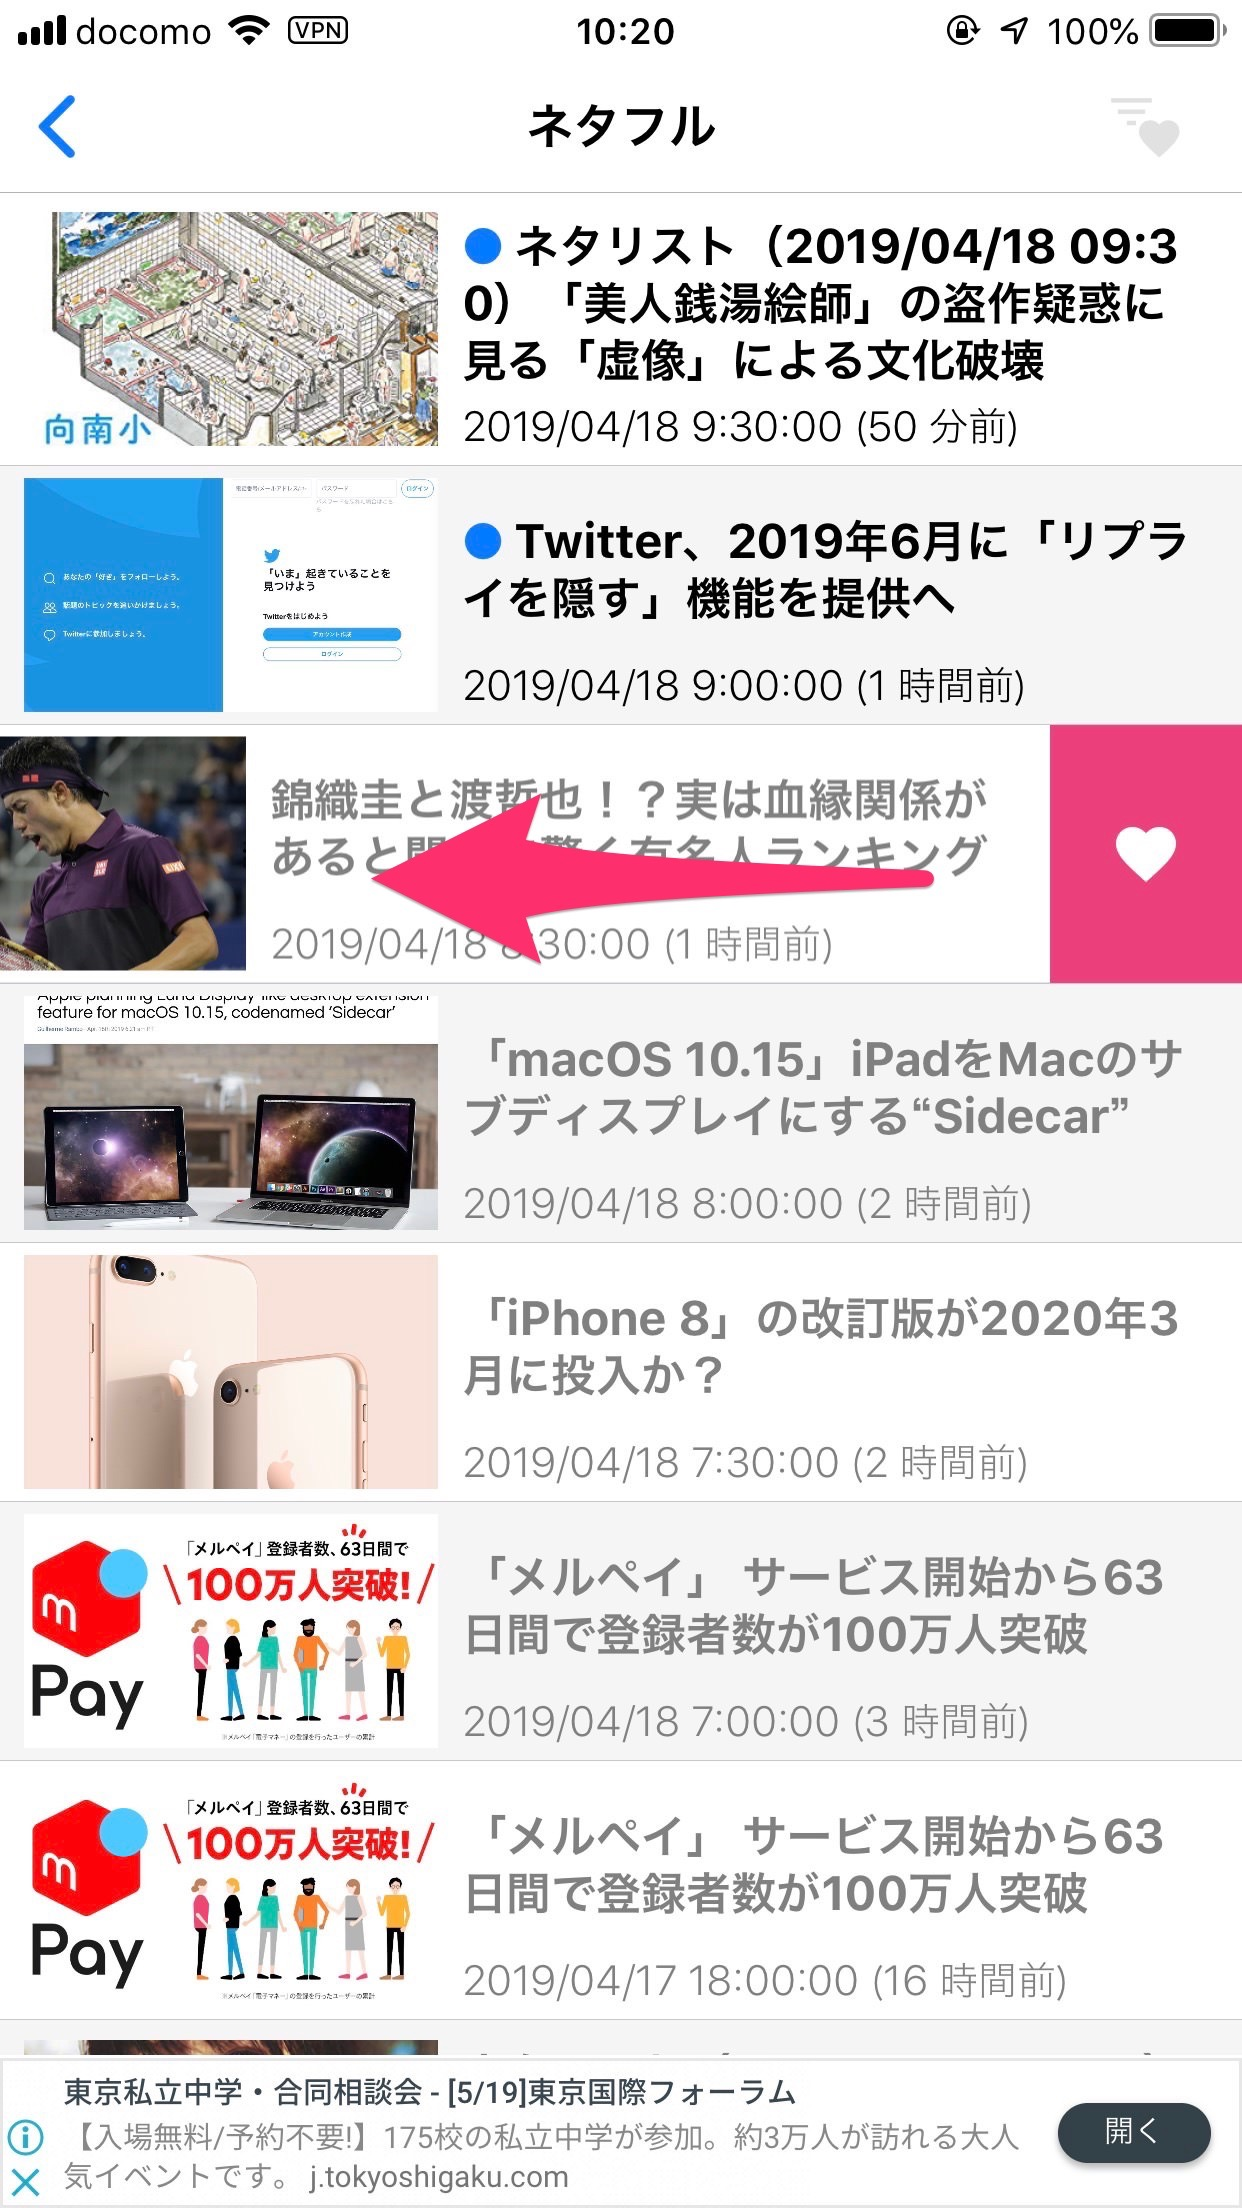 iPhoneアプリRSSリーダー「Simple RSS Reader」 7